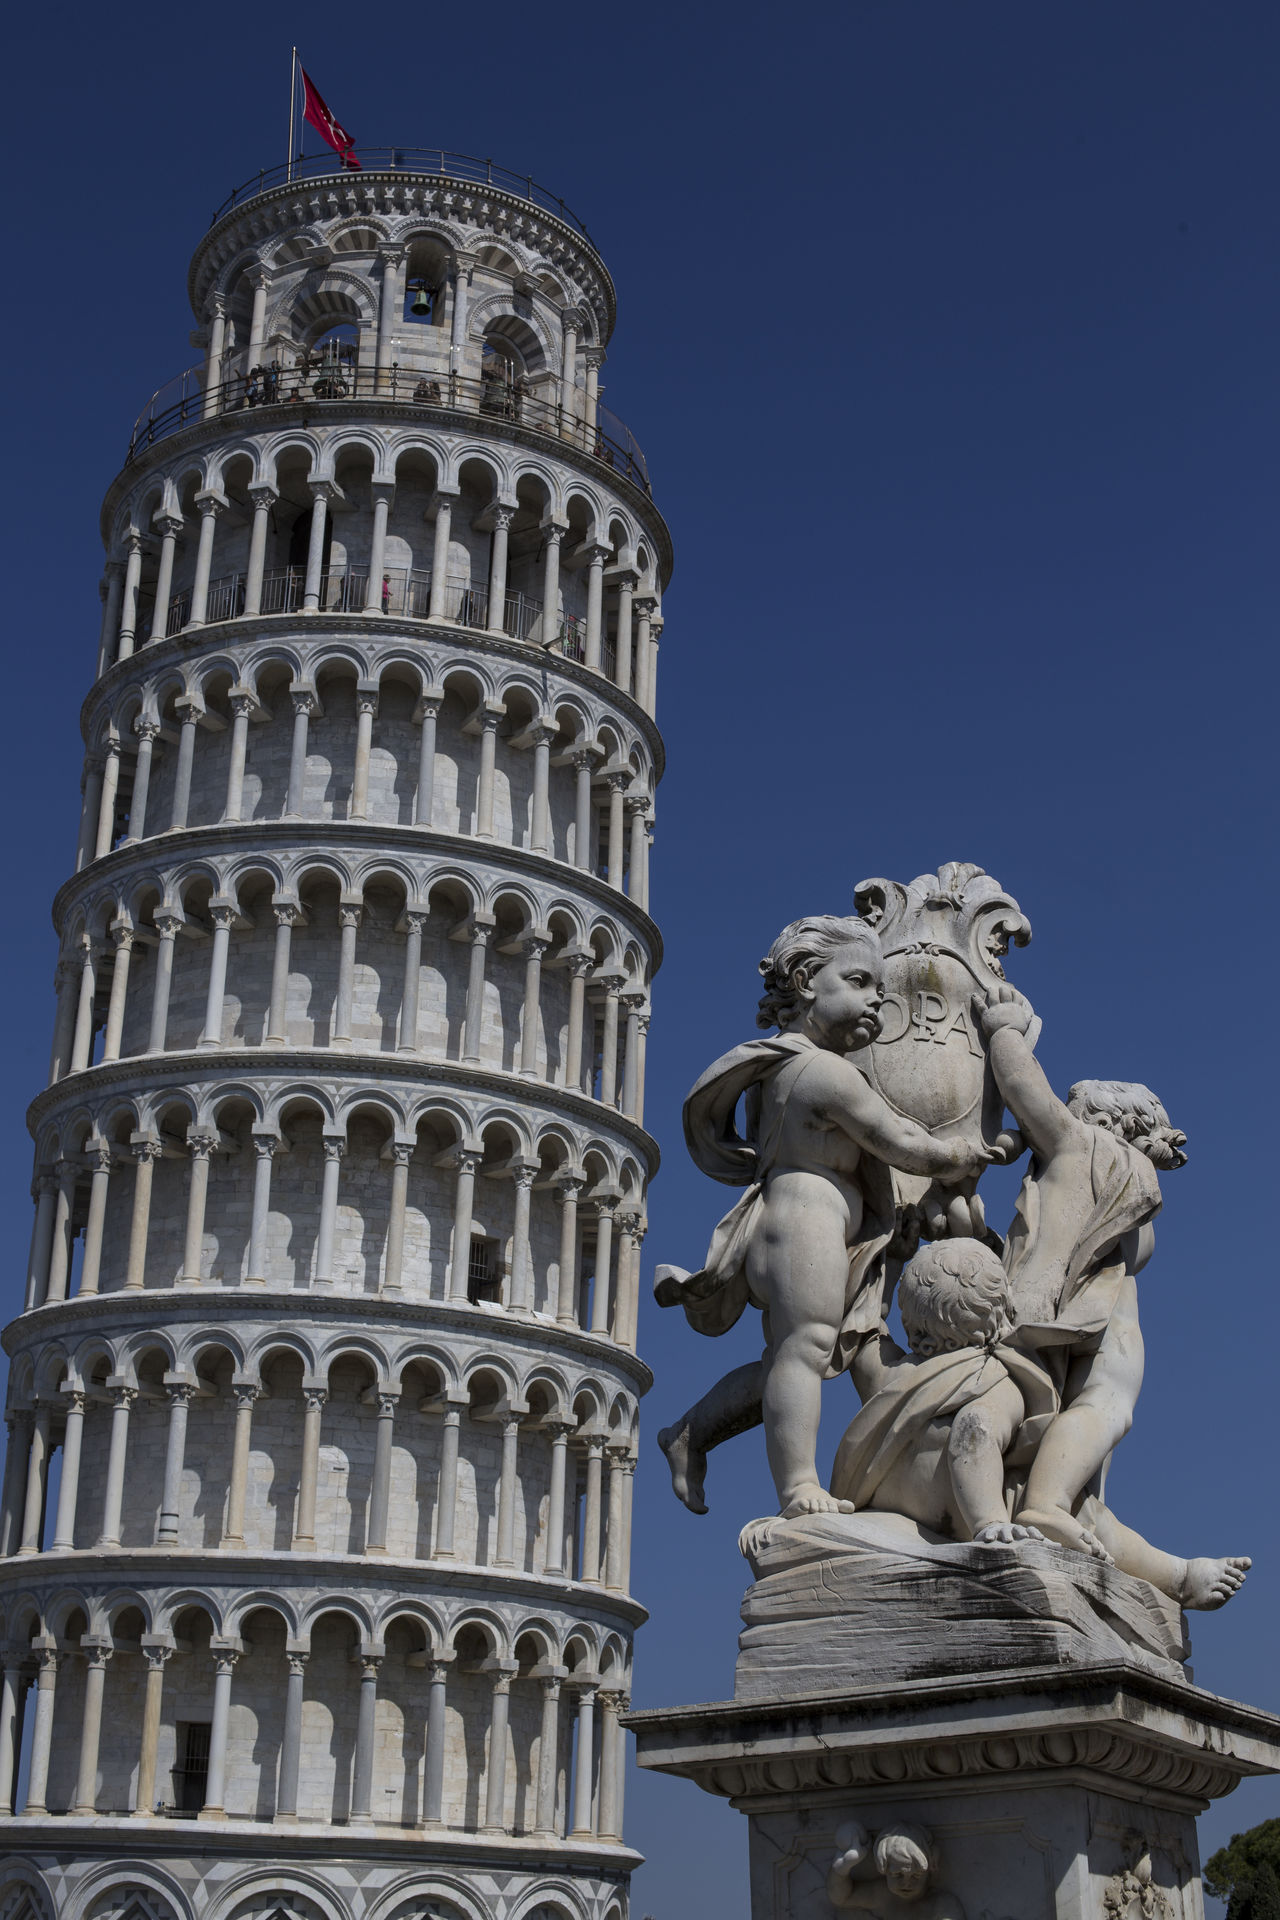 Architecture Blue Clear Sky Italy Leaning Tower Of Pisa Pisa Pisa Tower Schiefer Turm Von Pisa Sightseeing Sky Travel Destinations Traveling